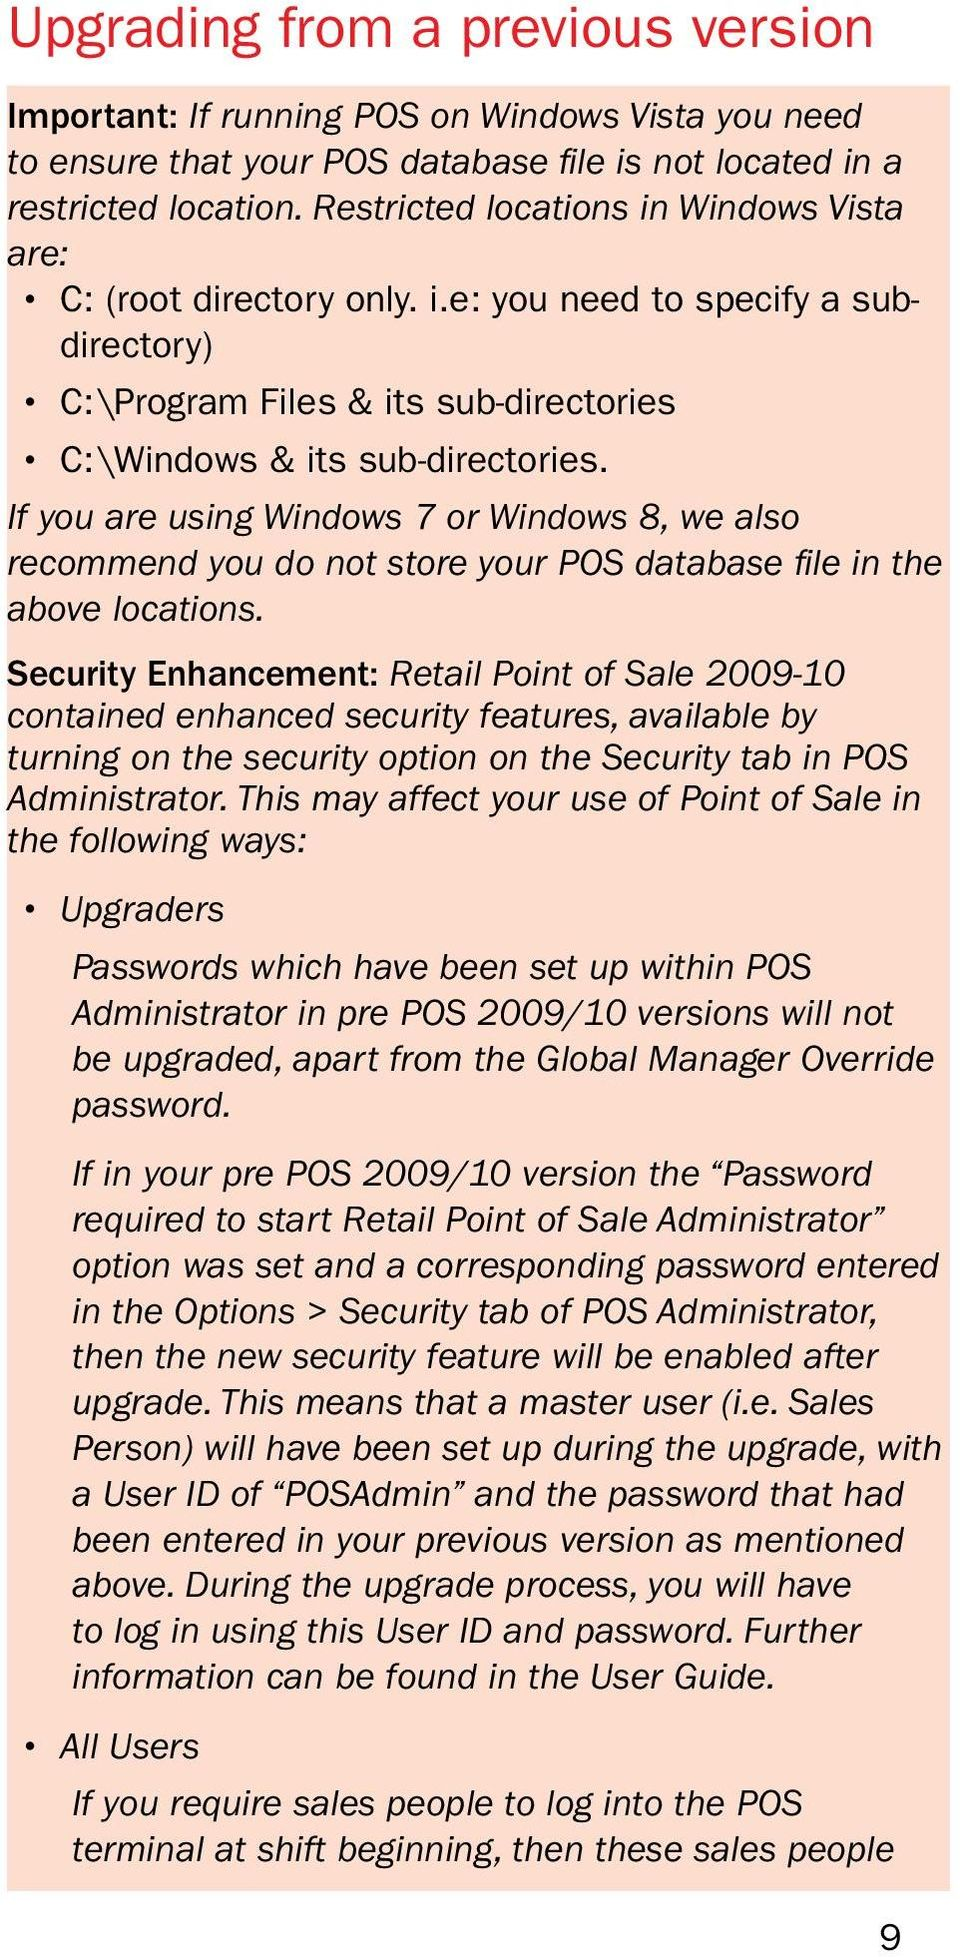 If you are using Windows 7 or Windows 8, we also recommend you do not store your POS database file in the above locations.